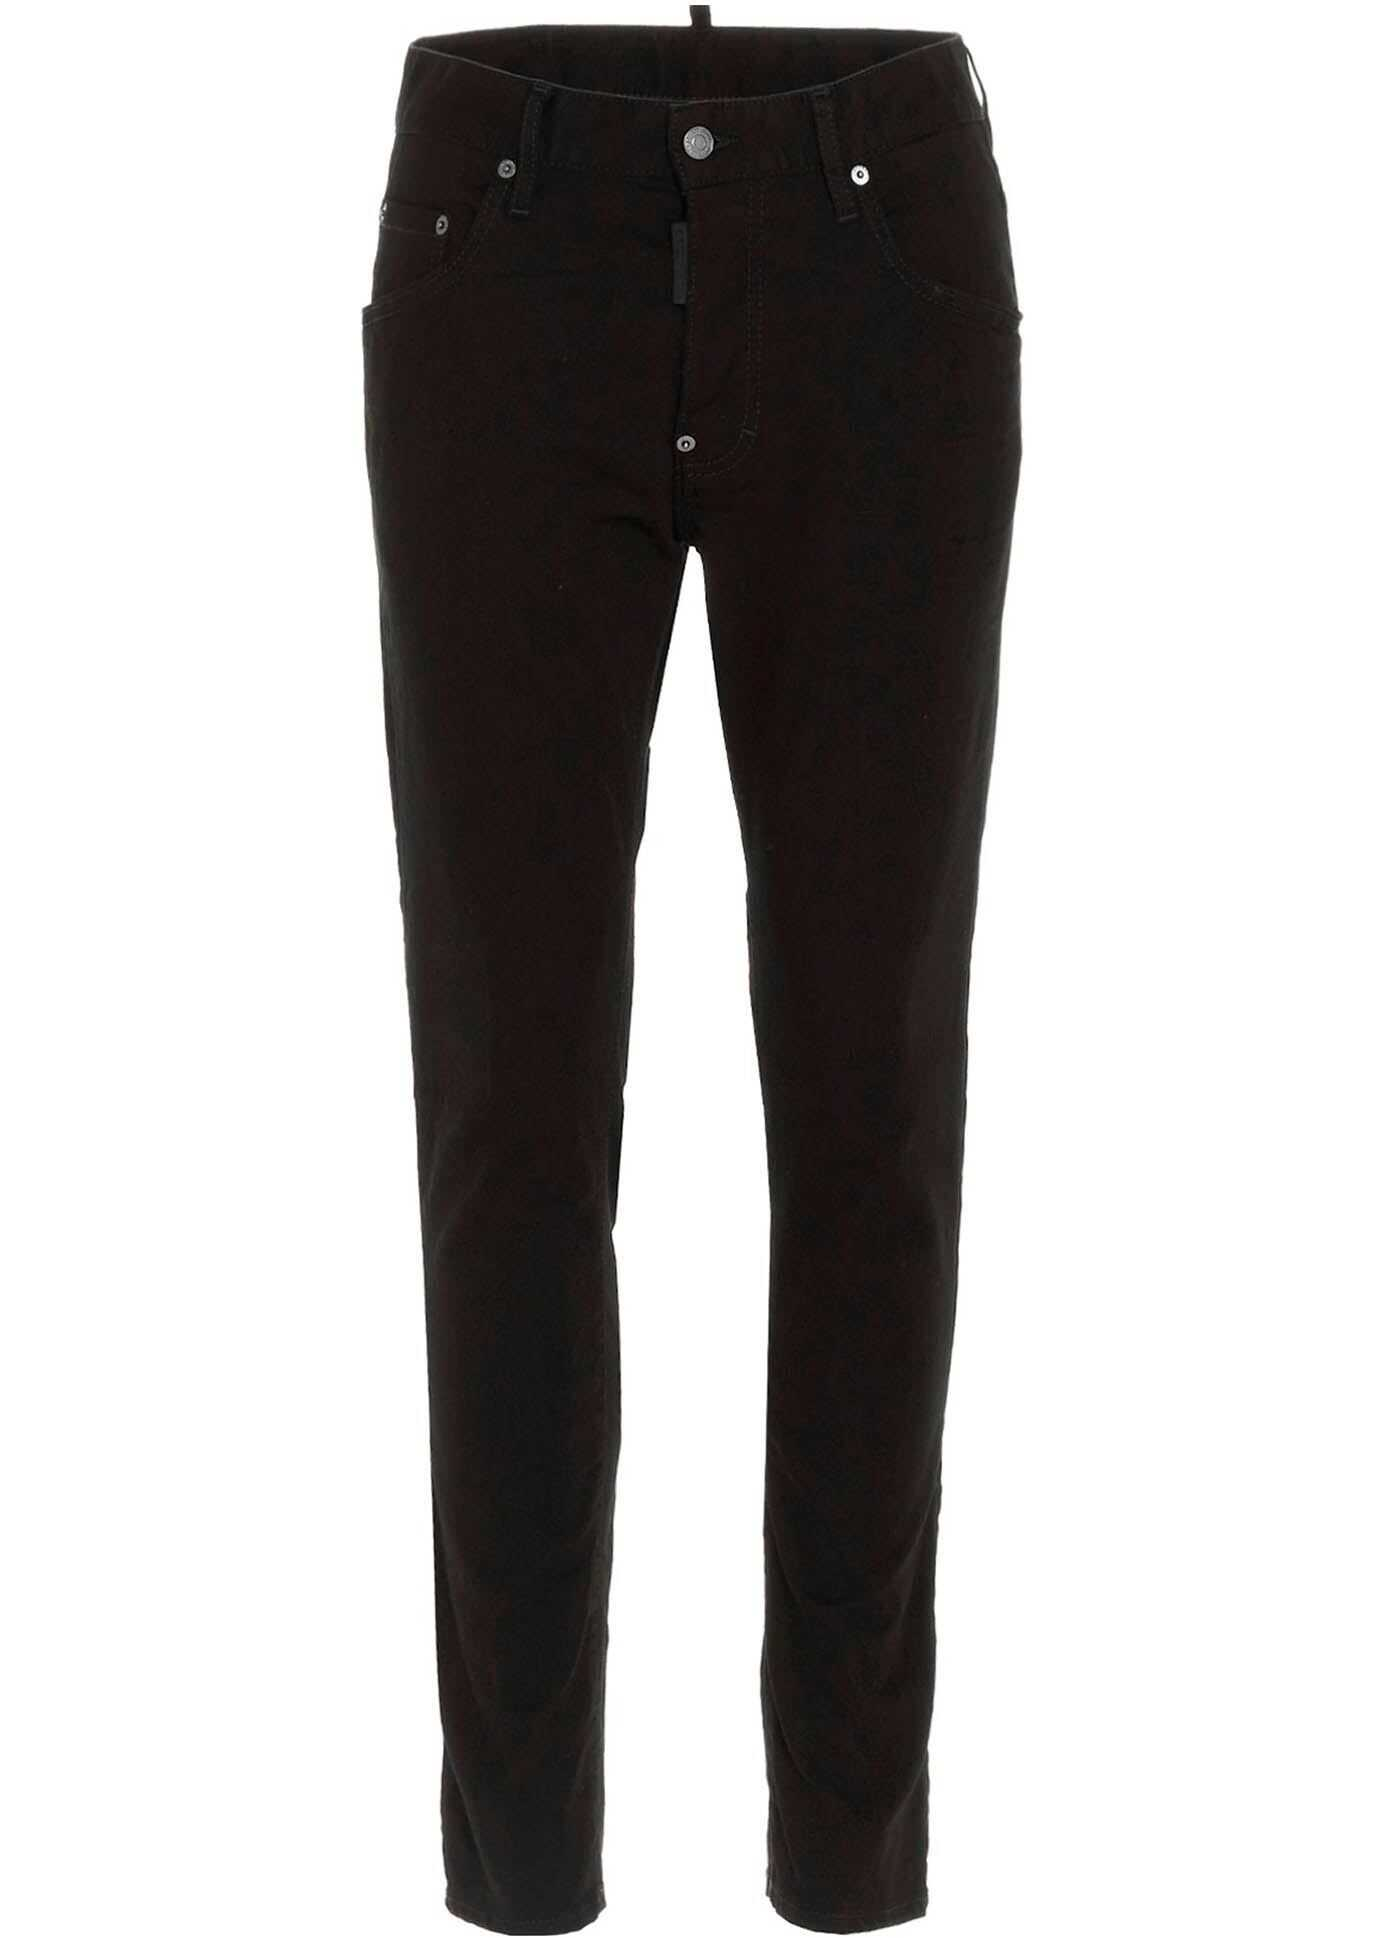 DSQUARED2 5 Pockets Jeans In Black Black imagine